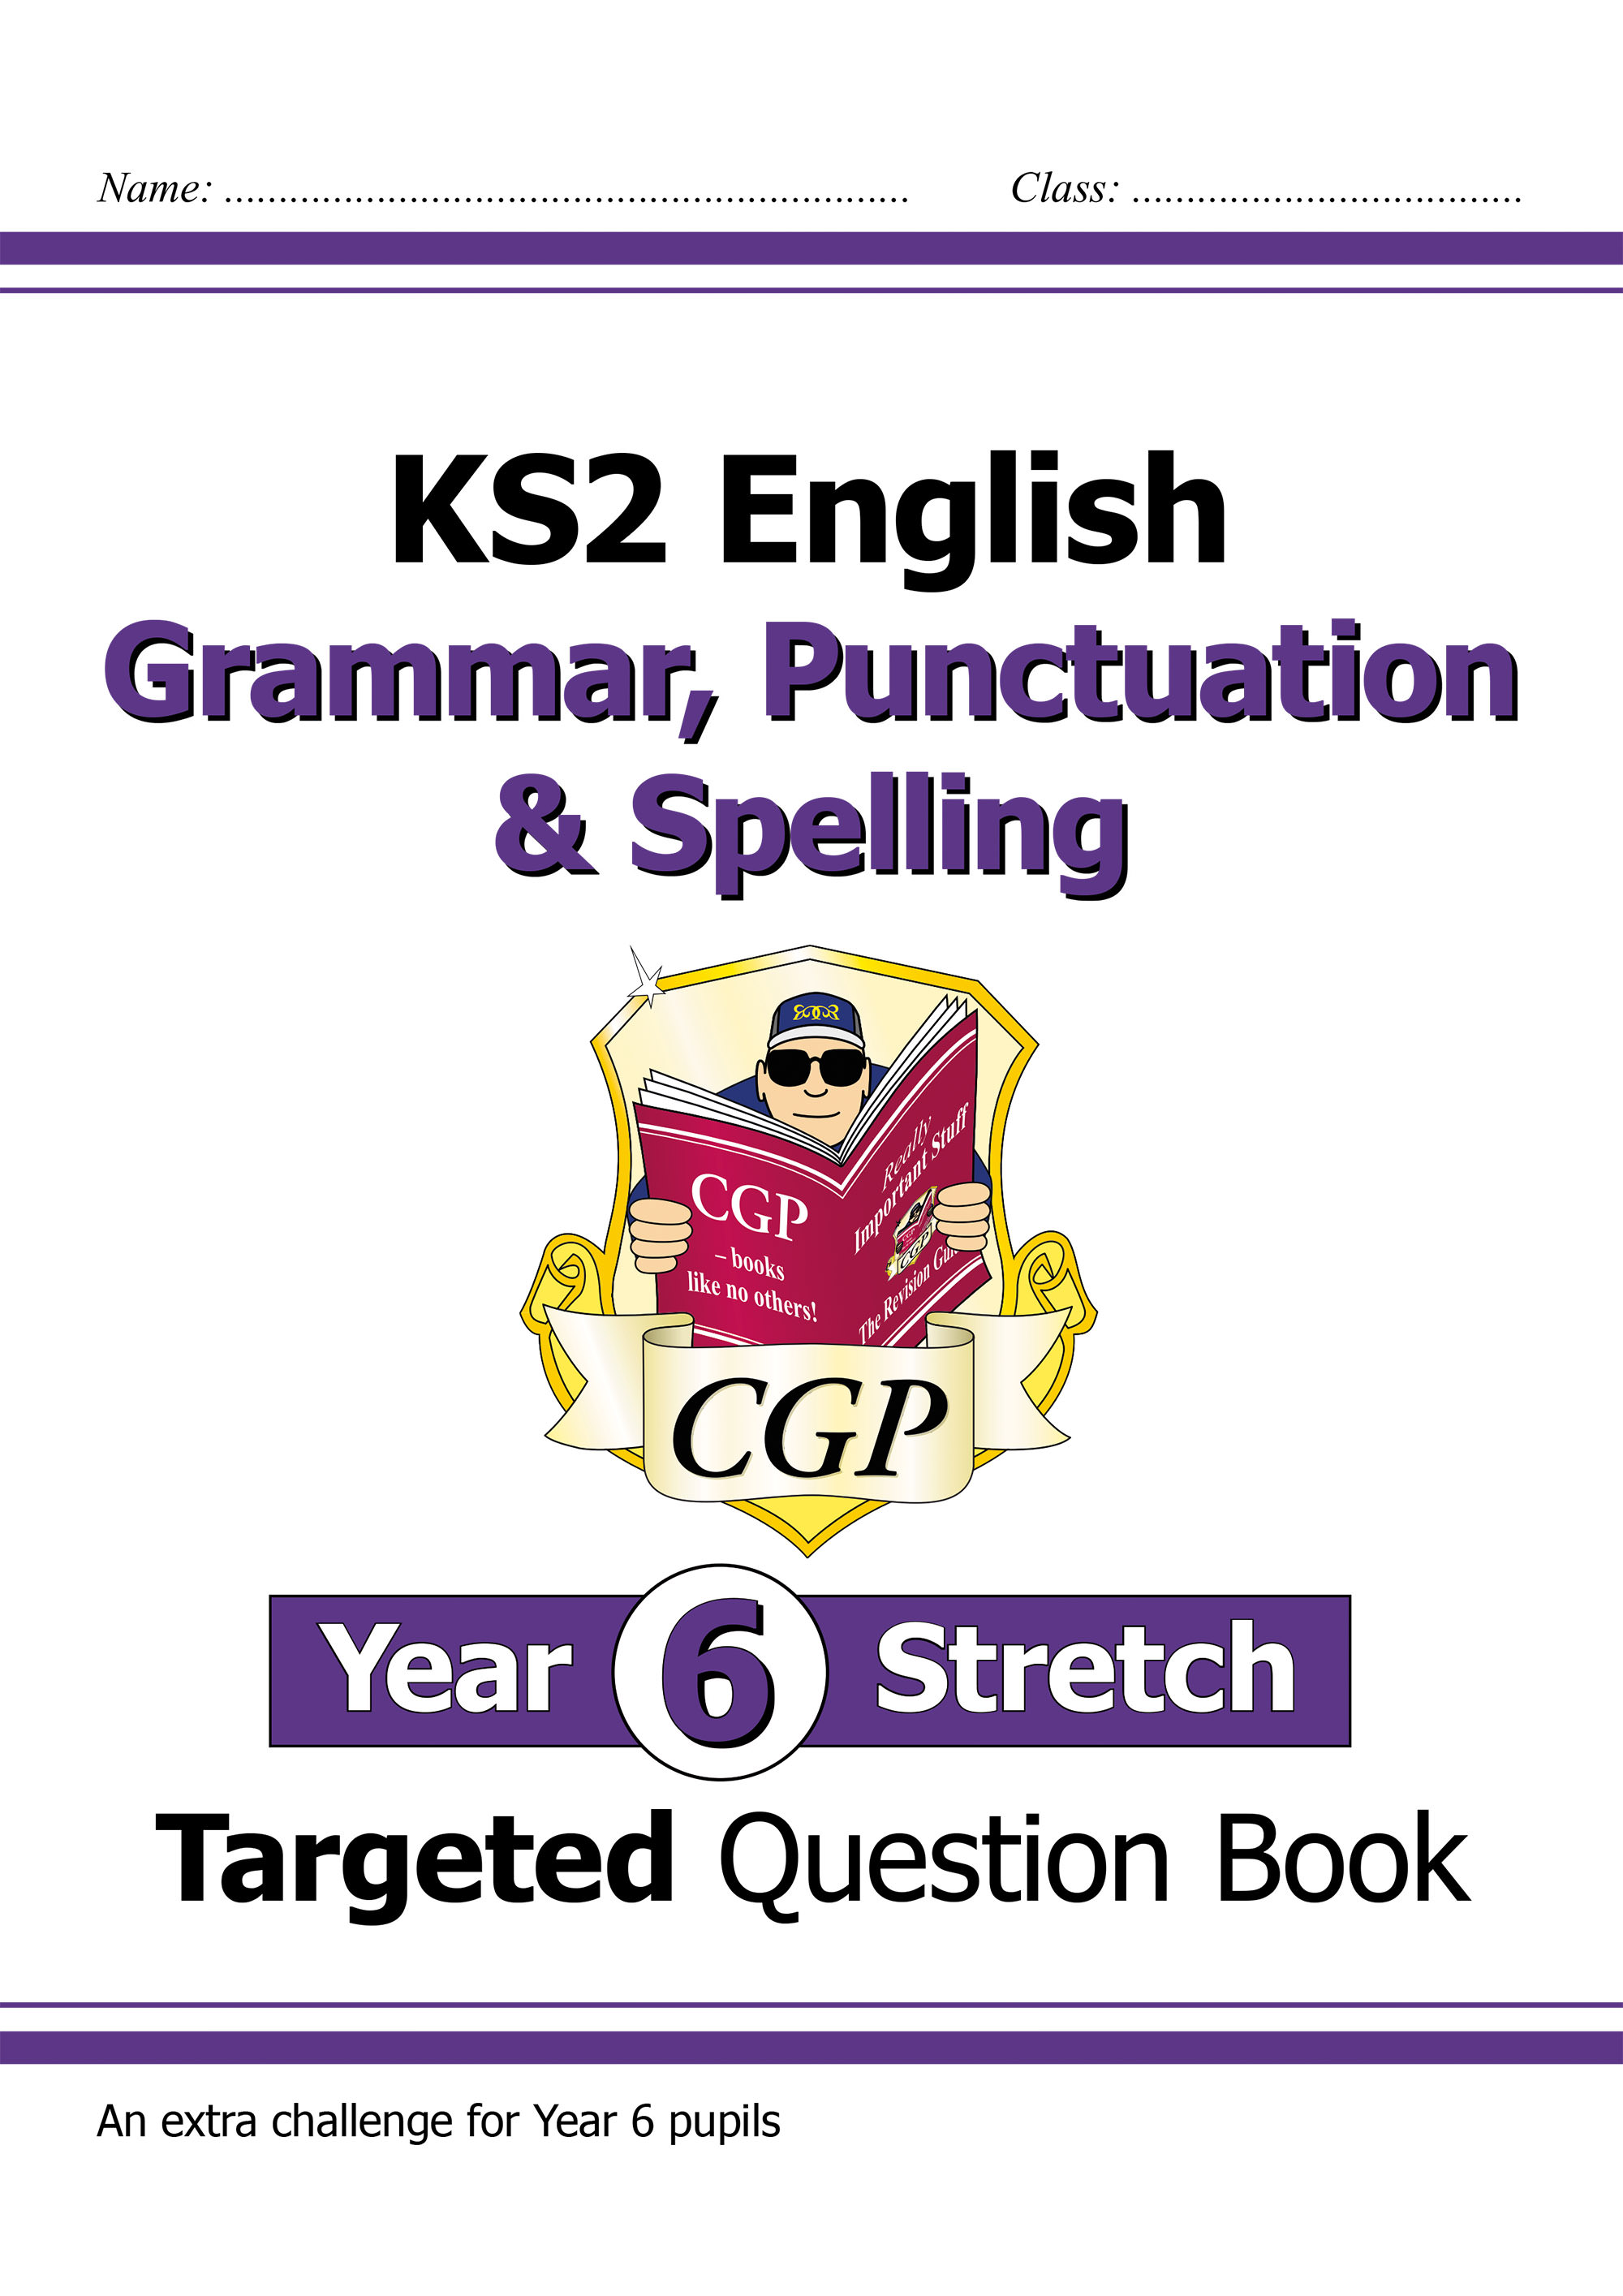 EG6HW21D - KS2 English Targeted Question Book: Challenging Grammar, Punctuation & Spelling - Year 6